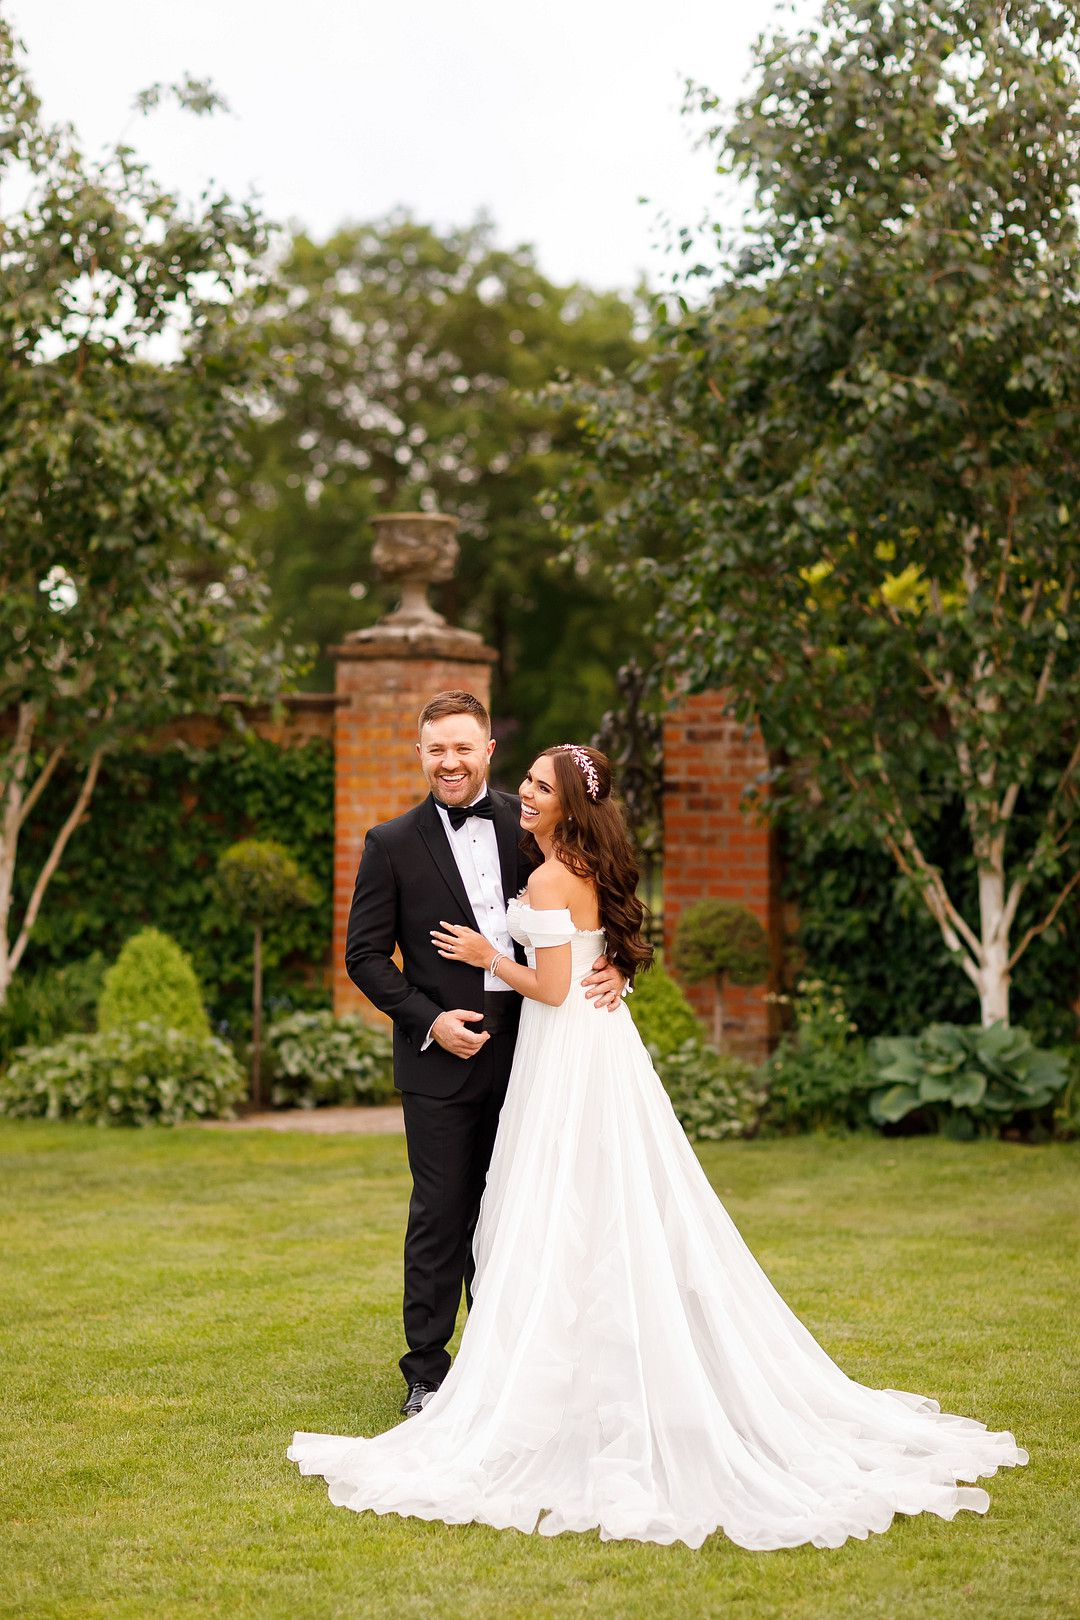 bride and groom at elegant summer wedding smiling and laughing